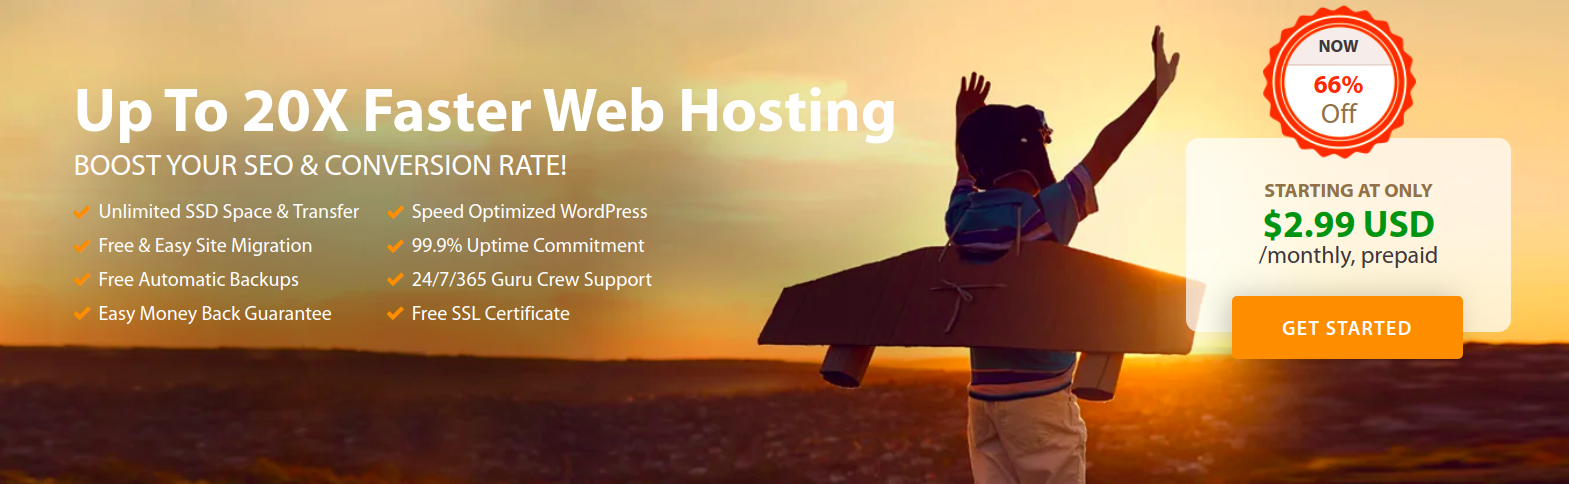 Why we've chosen a2hosting for our web hosting provider ?